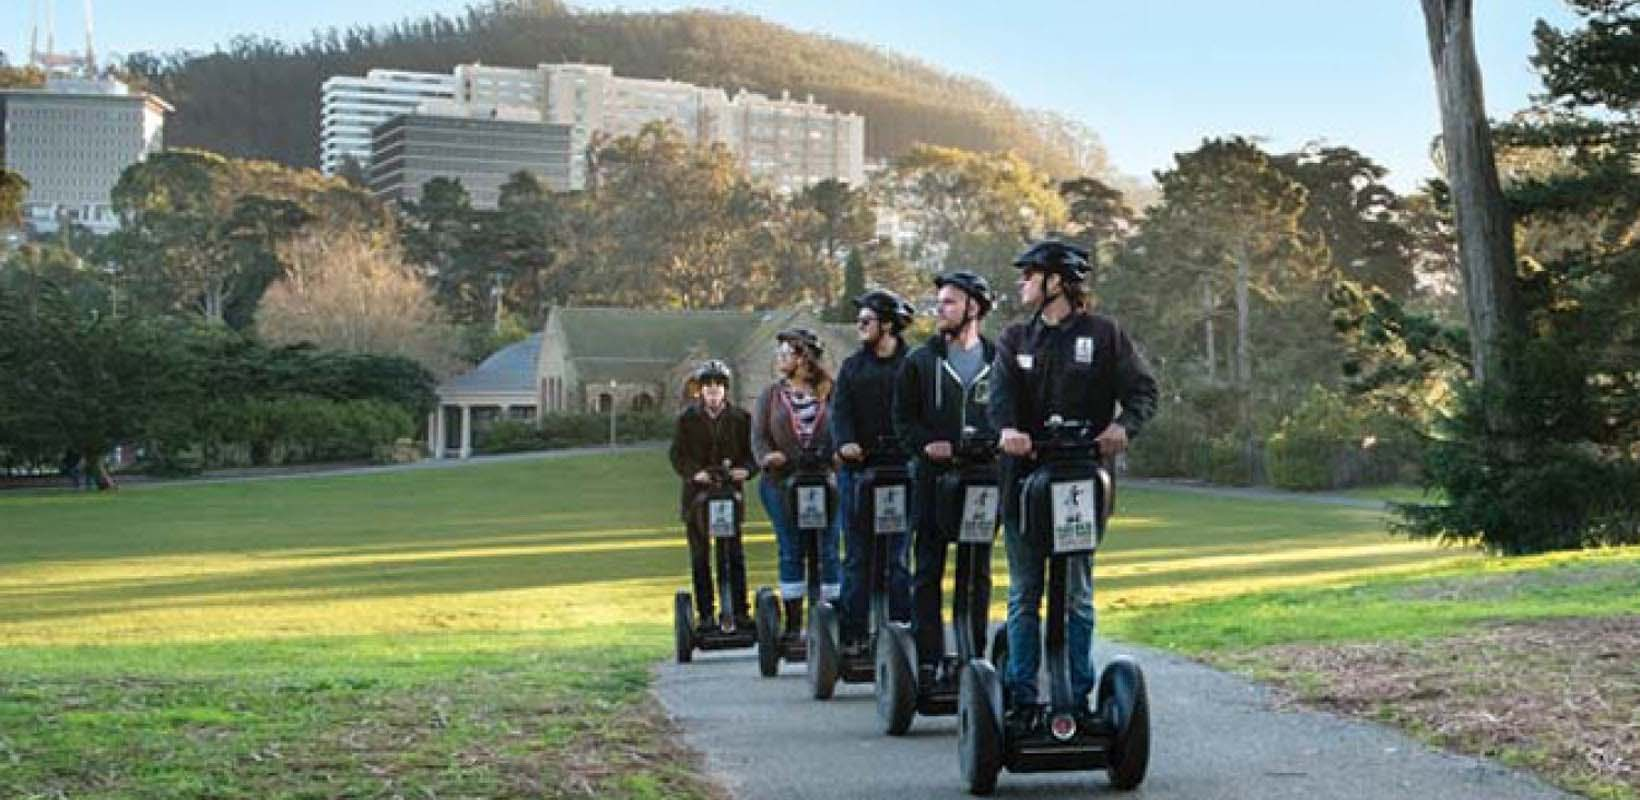 advanced-hills-and-crooked-street-segway-tour